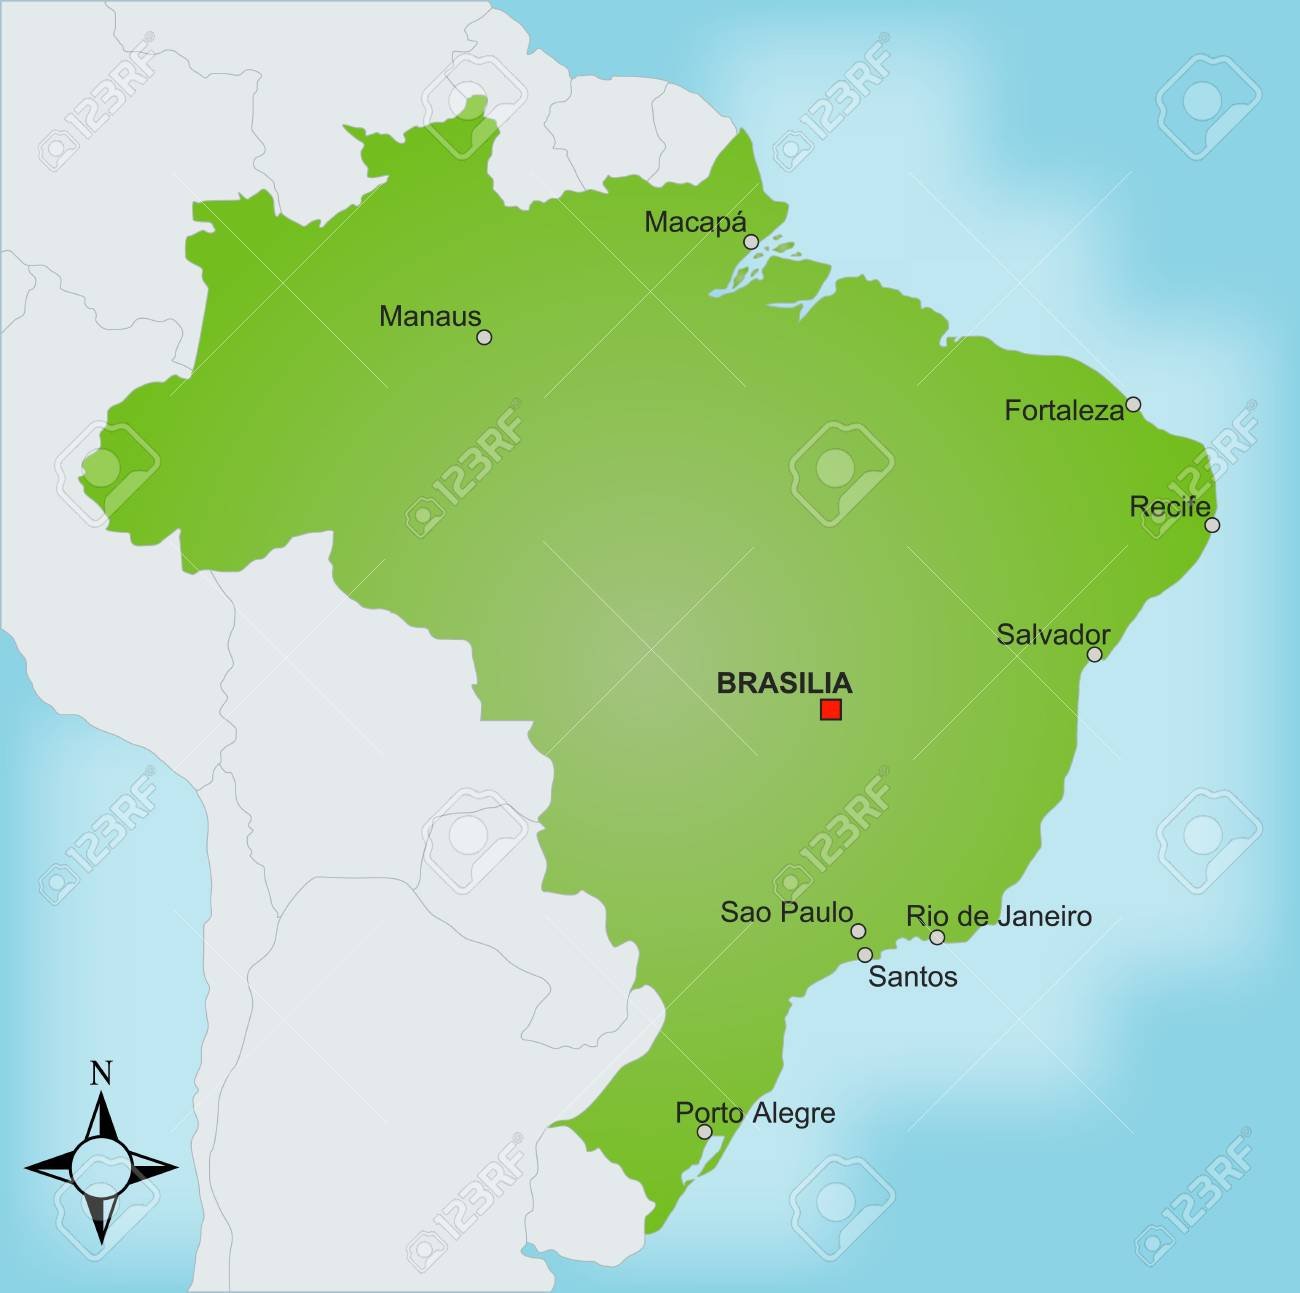 A stylized map of Brazil showing different cities and nearby..